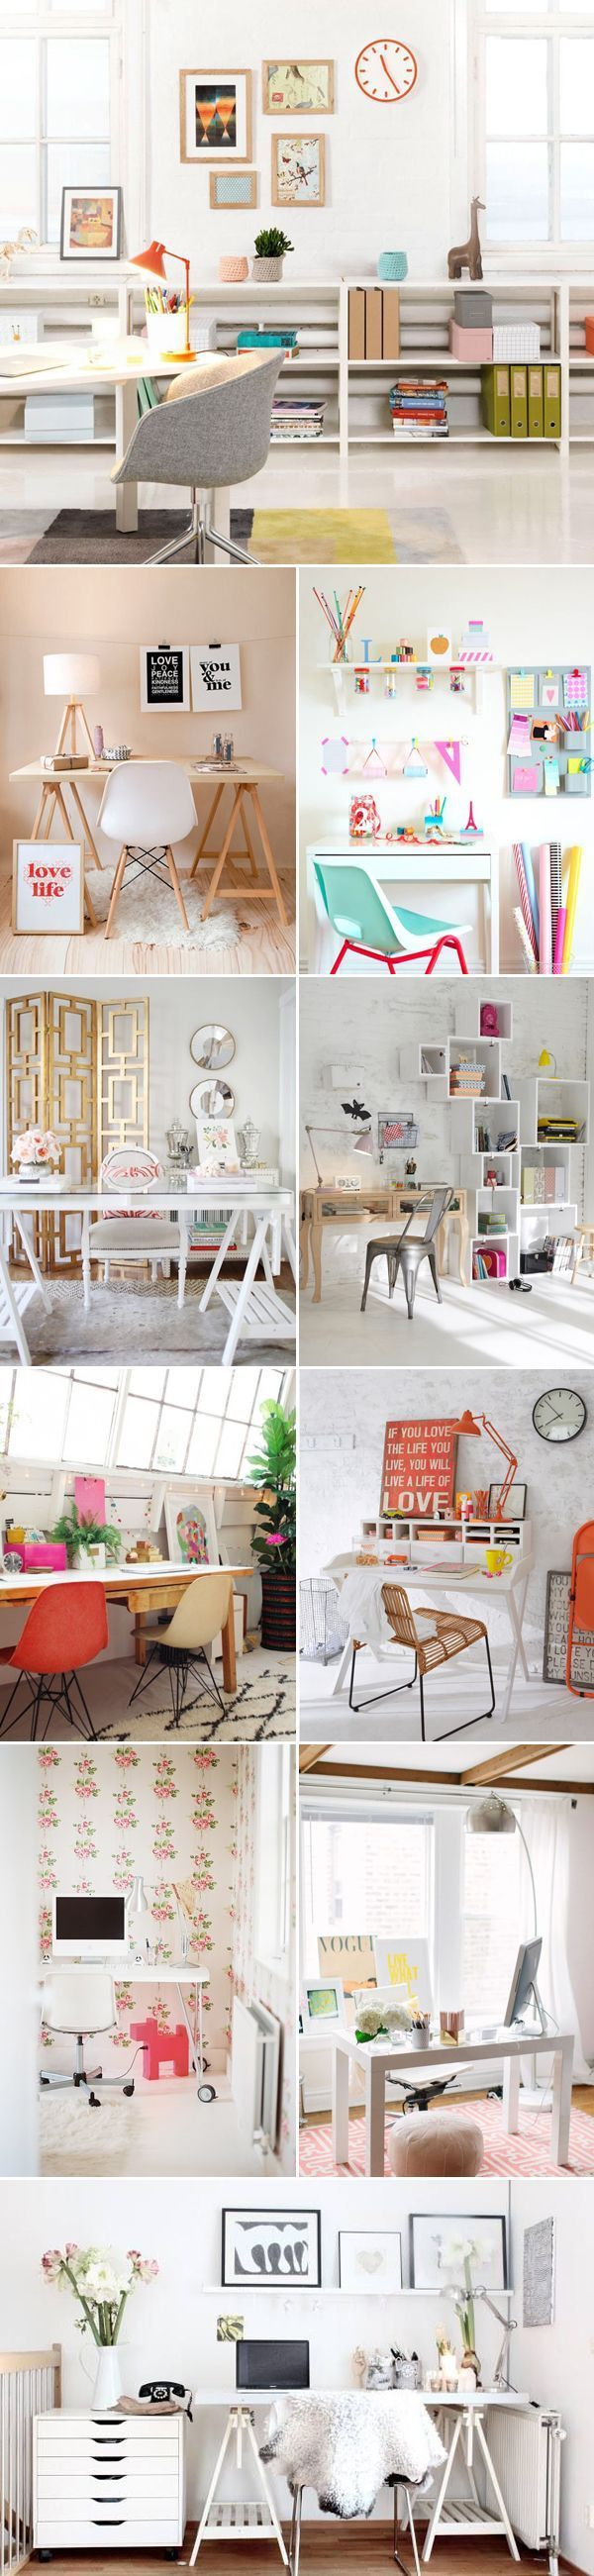 trendy office decor. 20 Simple And Stylish Home Office Designs Trendy Decor R